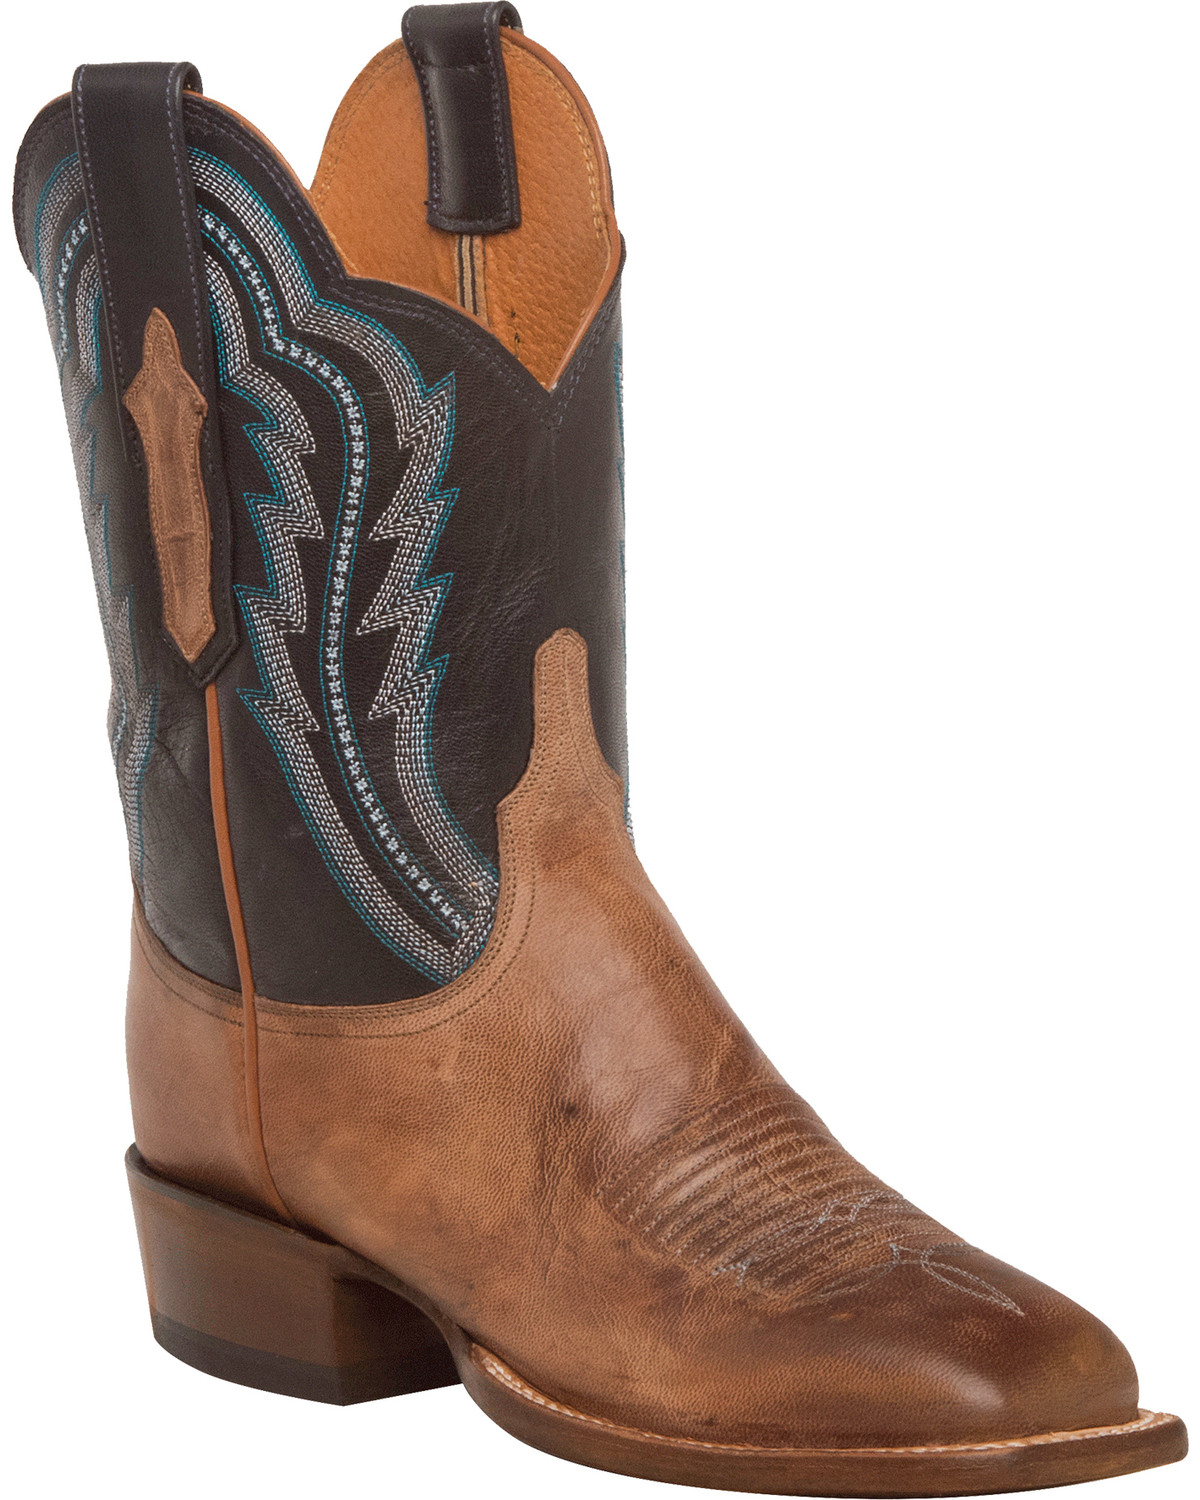 14107e007ed Lucchese Women's Daisy Goat Leather Horseman Western Boots - Square Toe